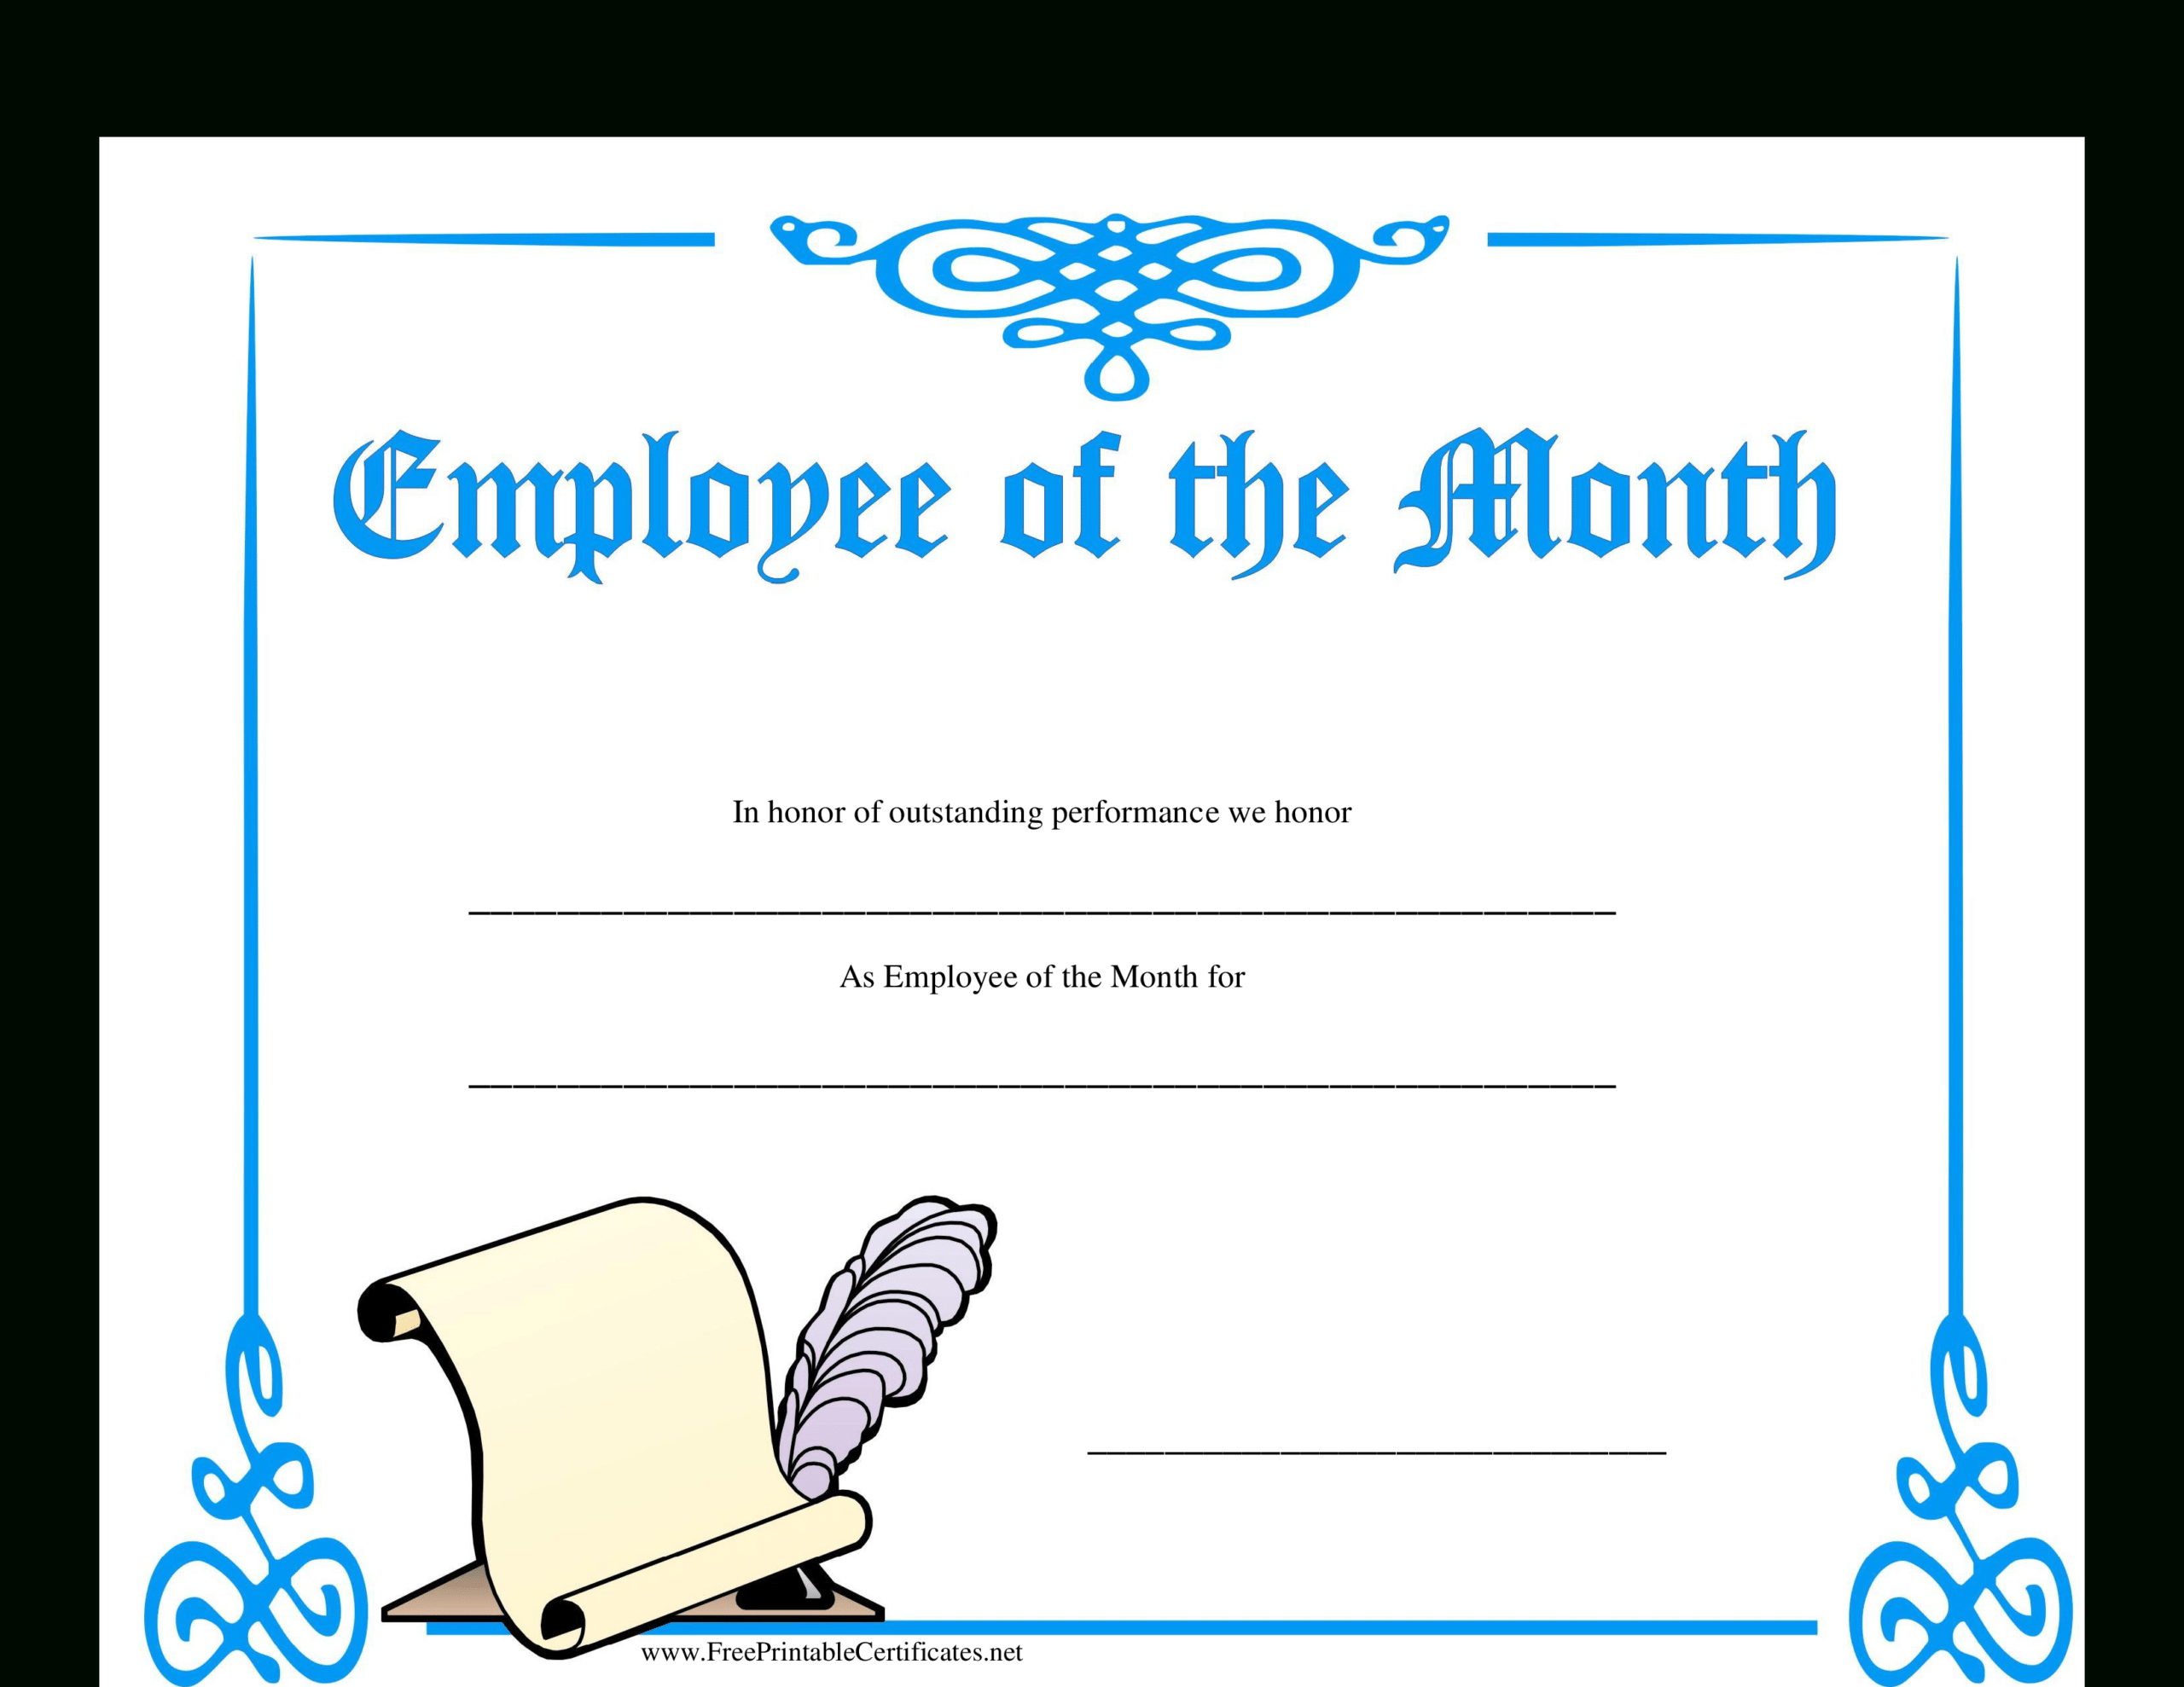 Employee Of The Month Certificate | Templates At with regard to Employee Of The Month Certificate Templates